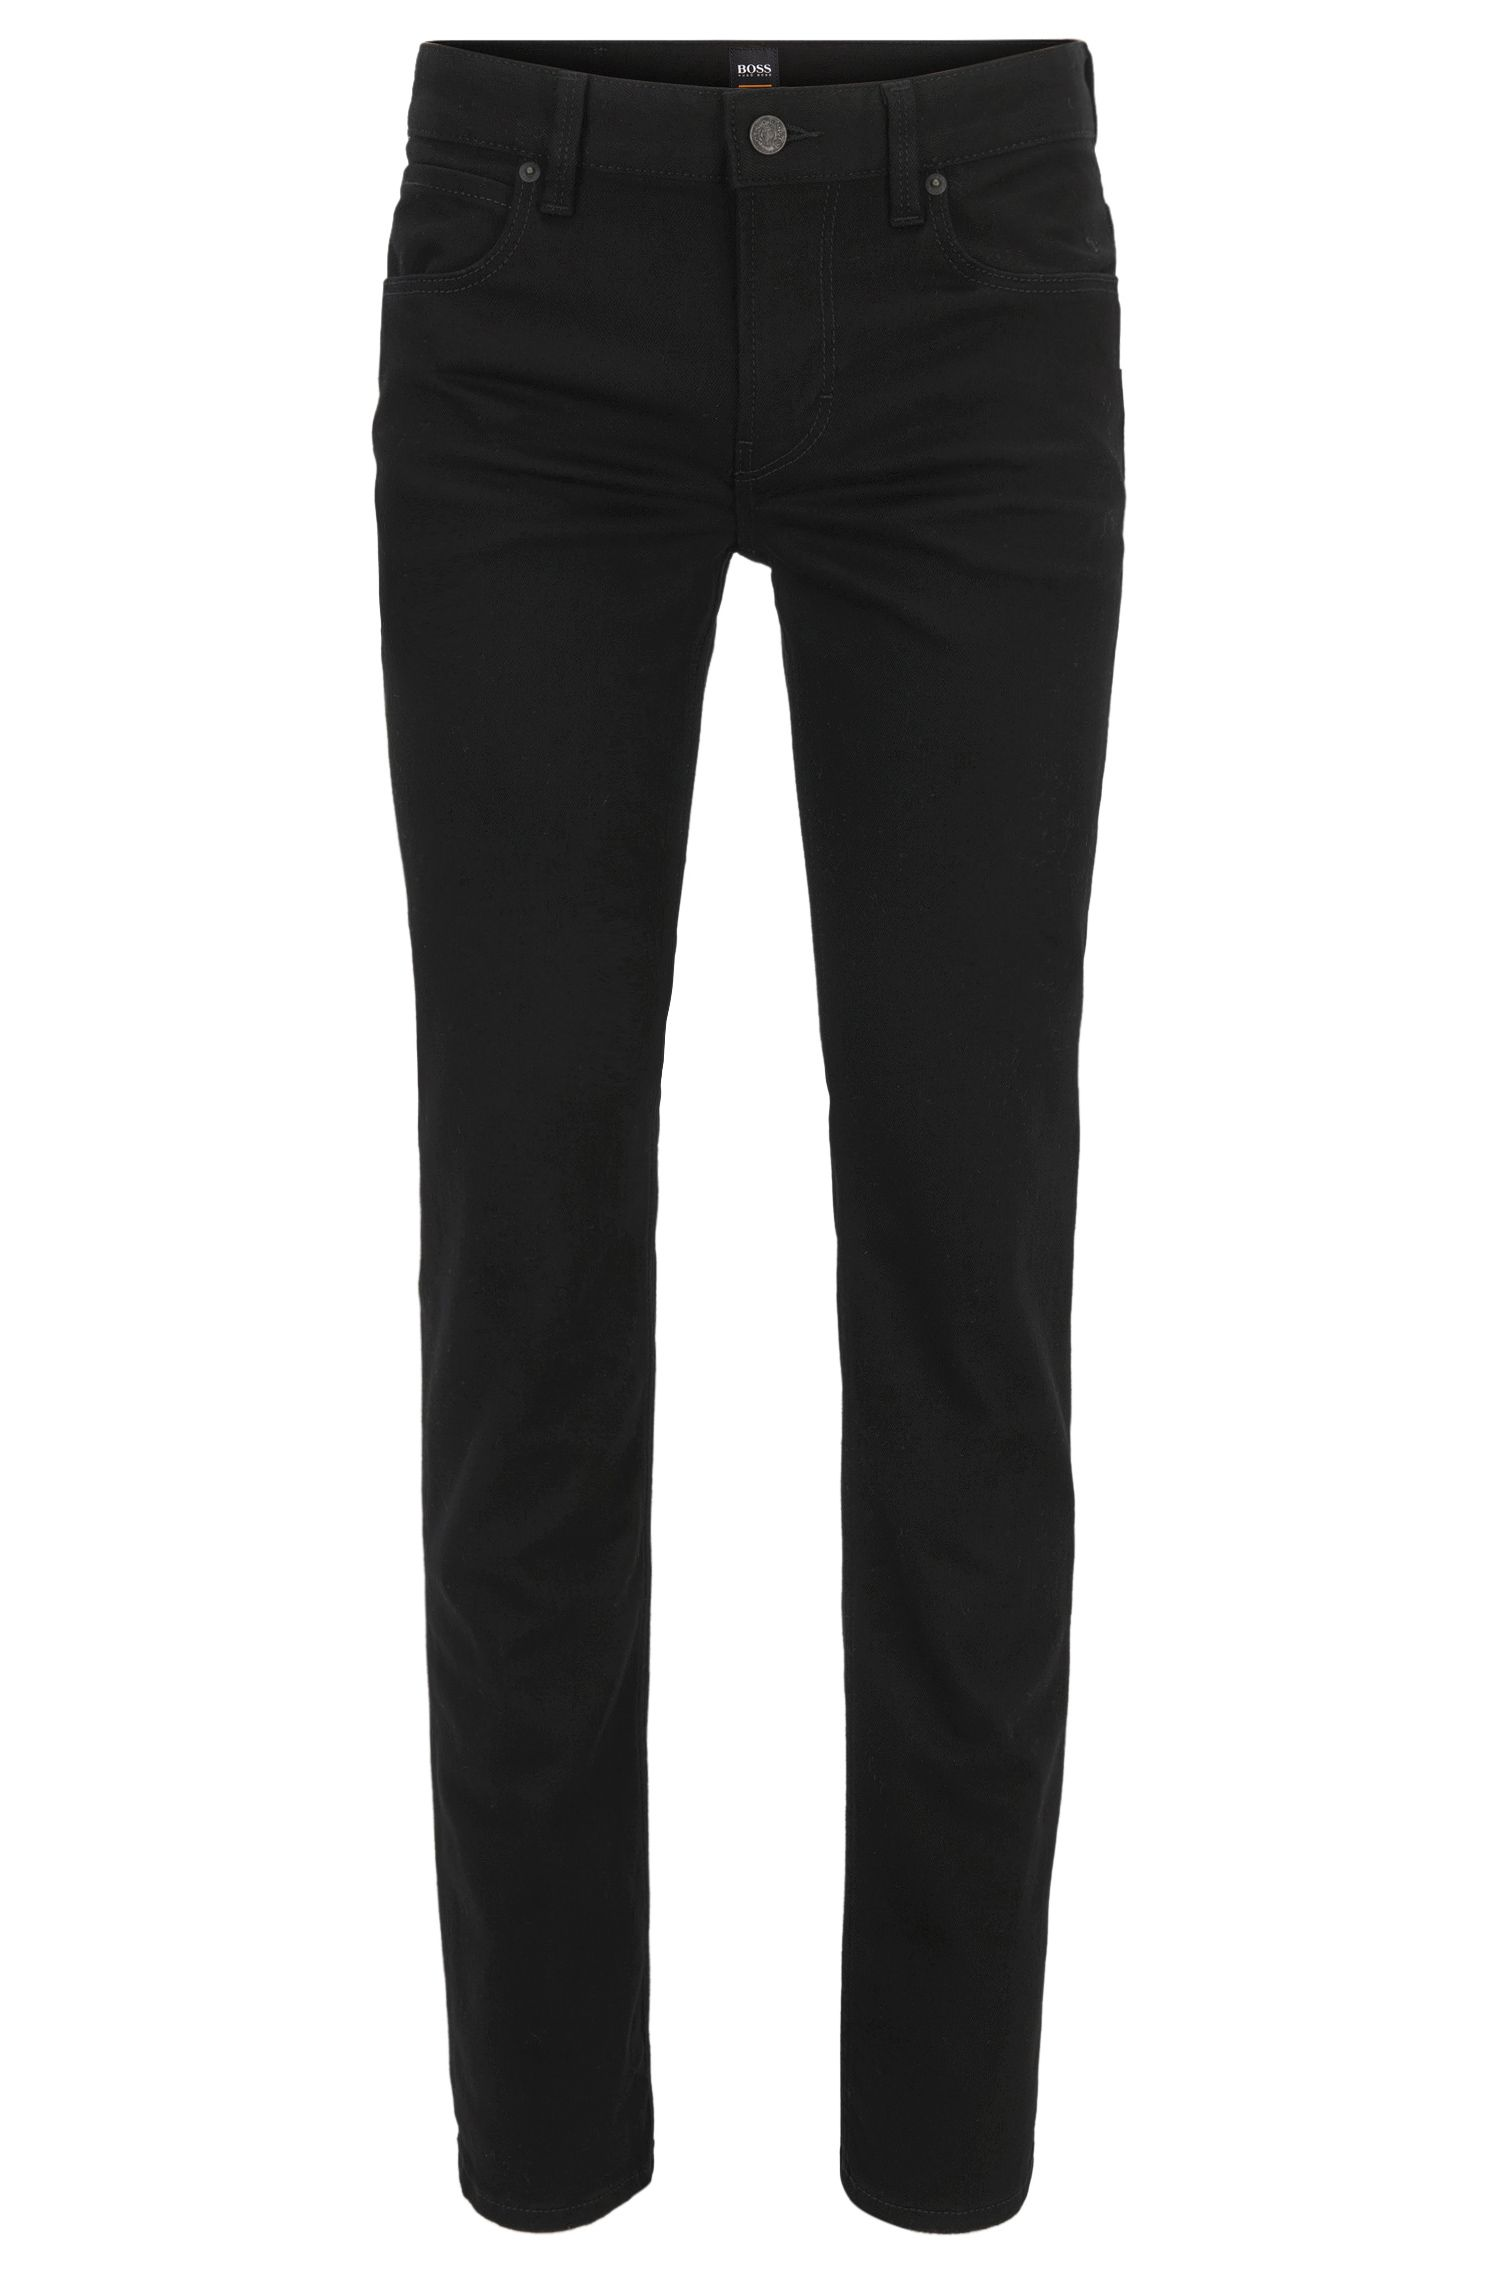 Slim-fit jeans in Stay Black denim